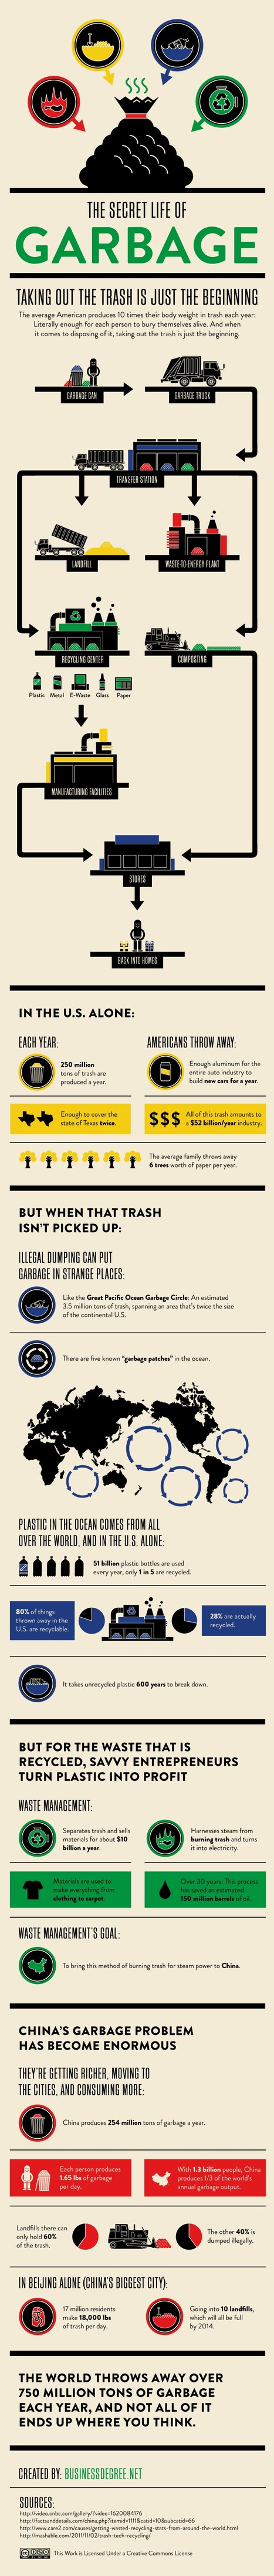 The secret life of garbage [infographic] - Holy Kaw! | The Future of Water & Waste | Scoop.it